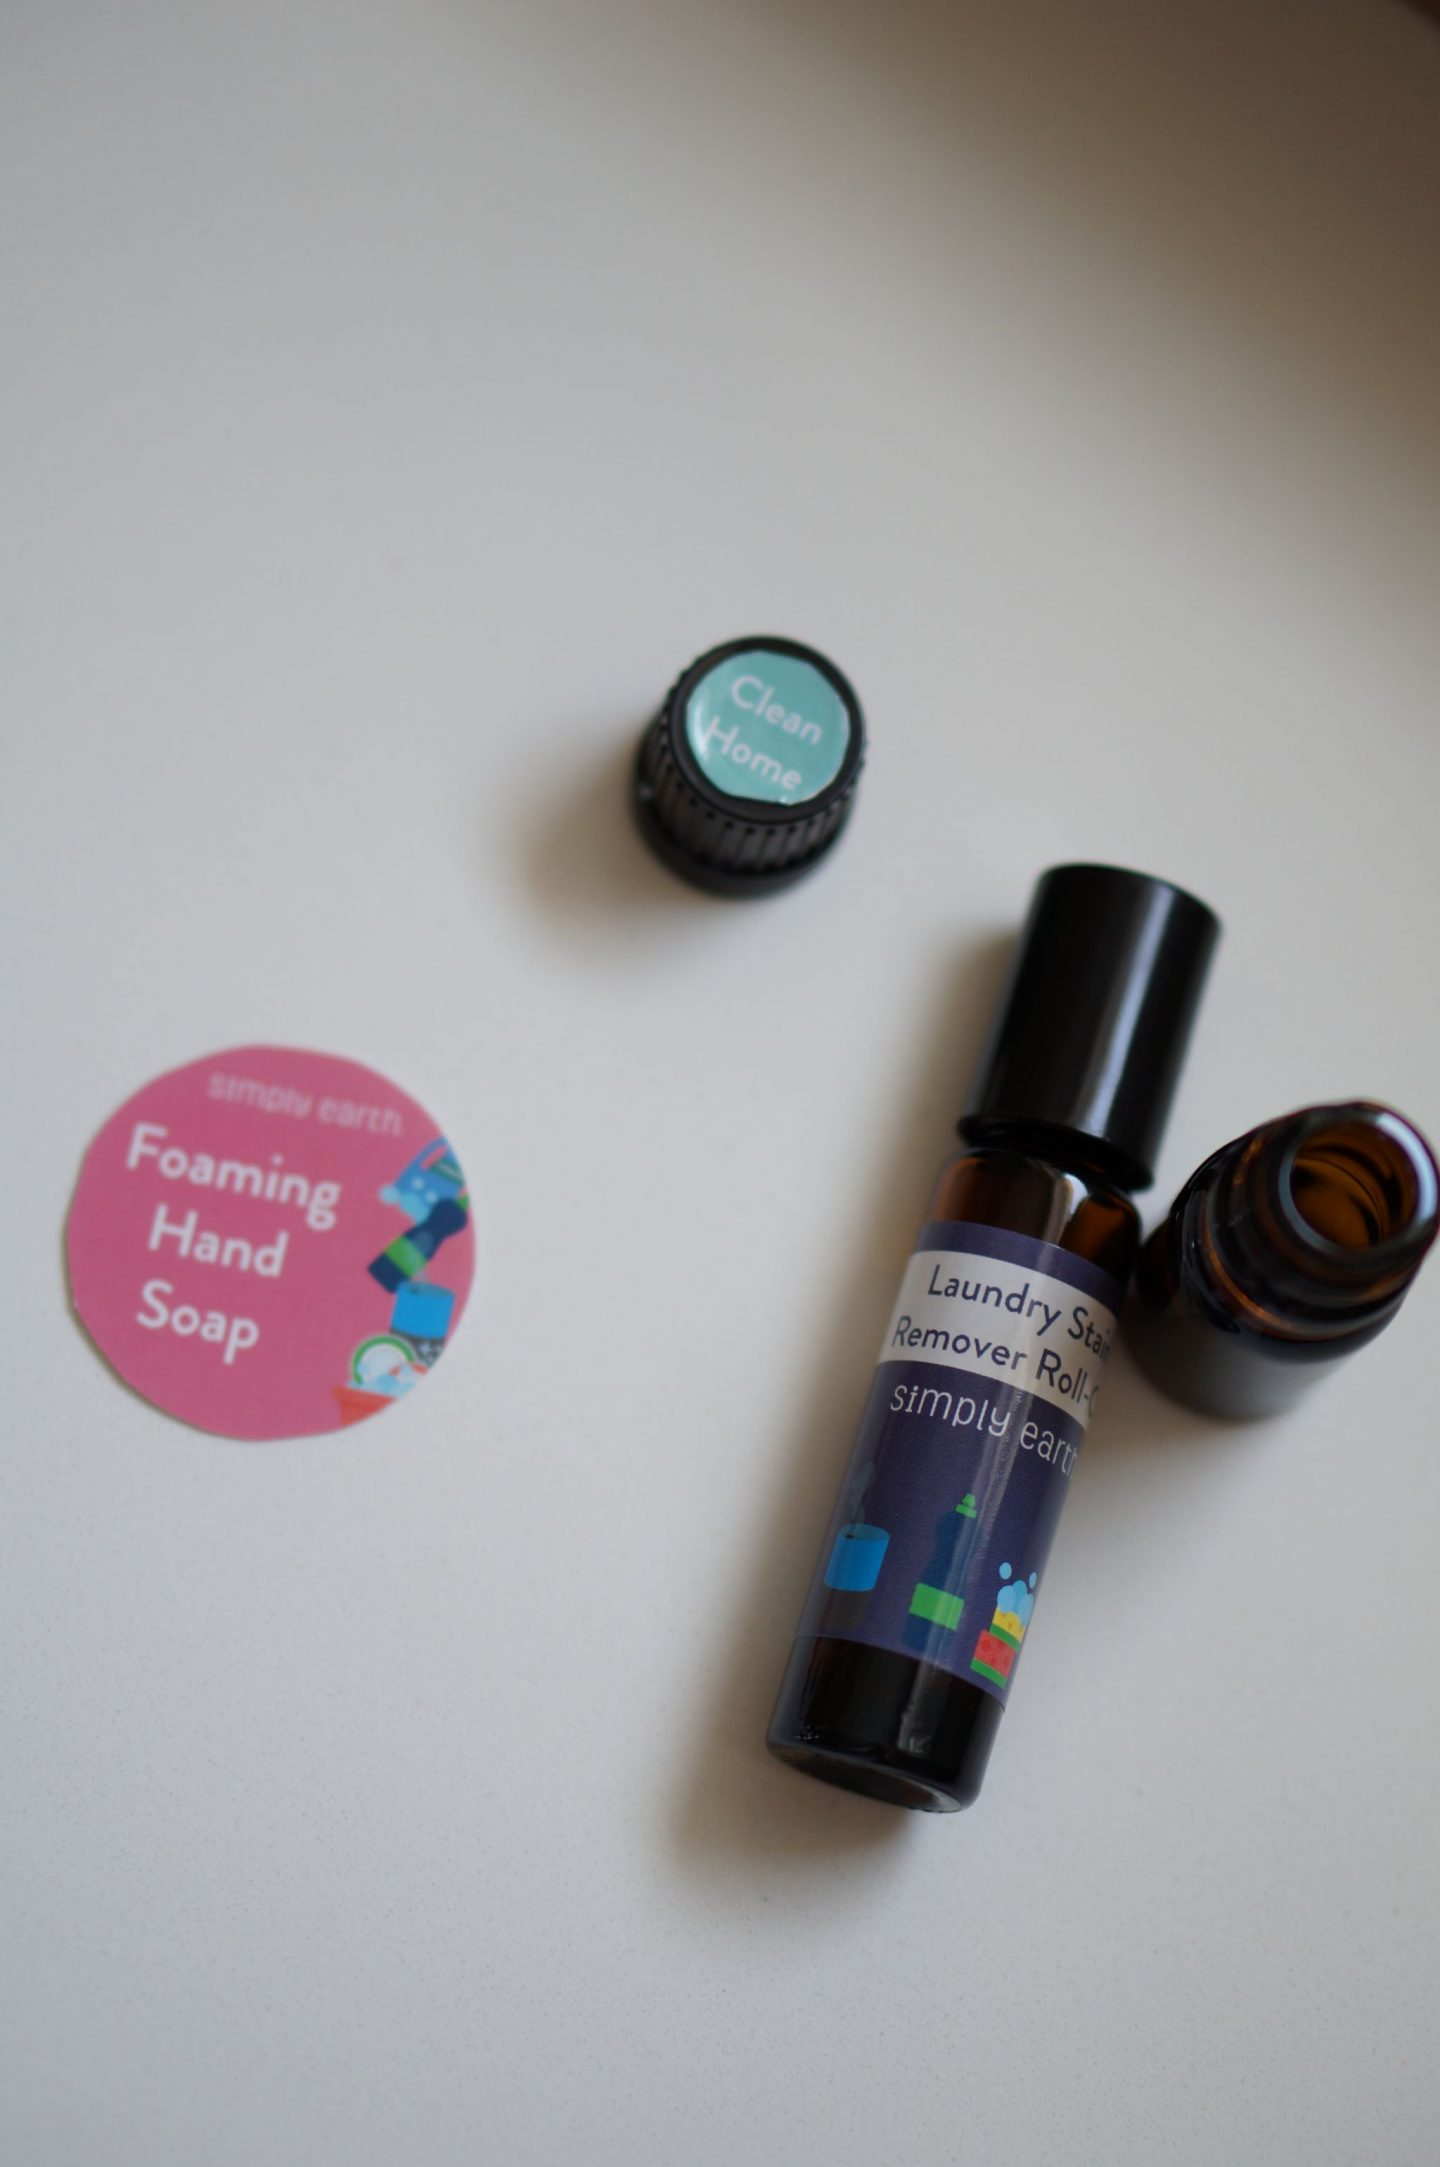 North Carolina blogger Rebecca Lately shares her Simply Earth April 2019 essential oil box. Check out how she made her own foaming hand soap!